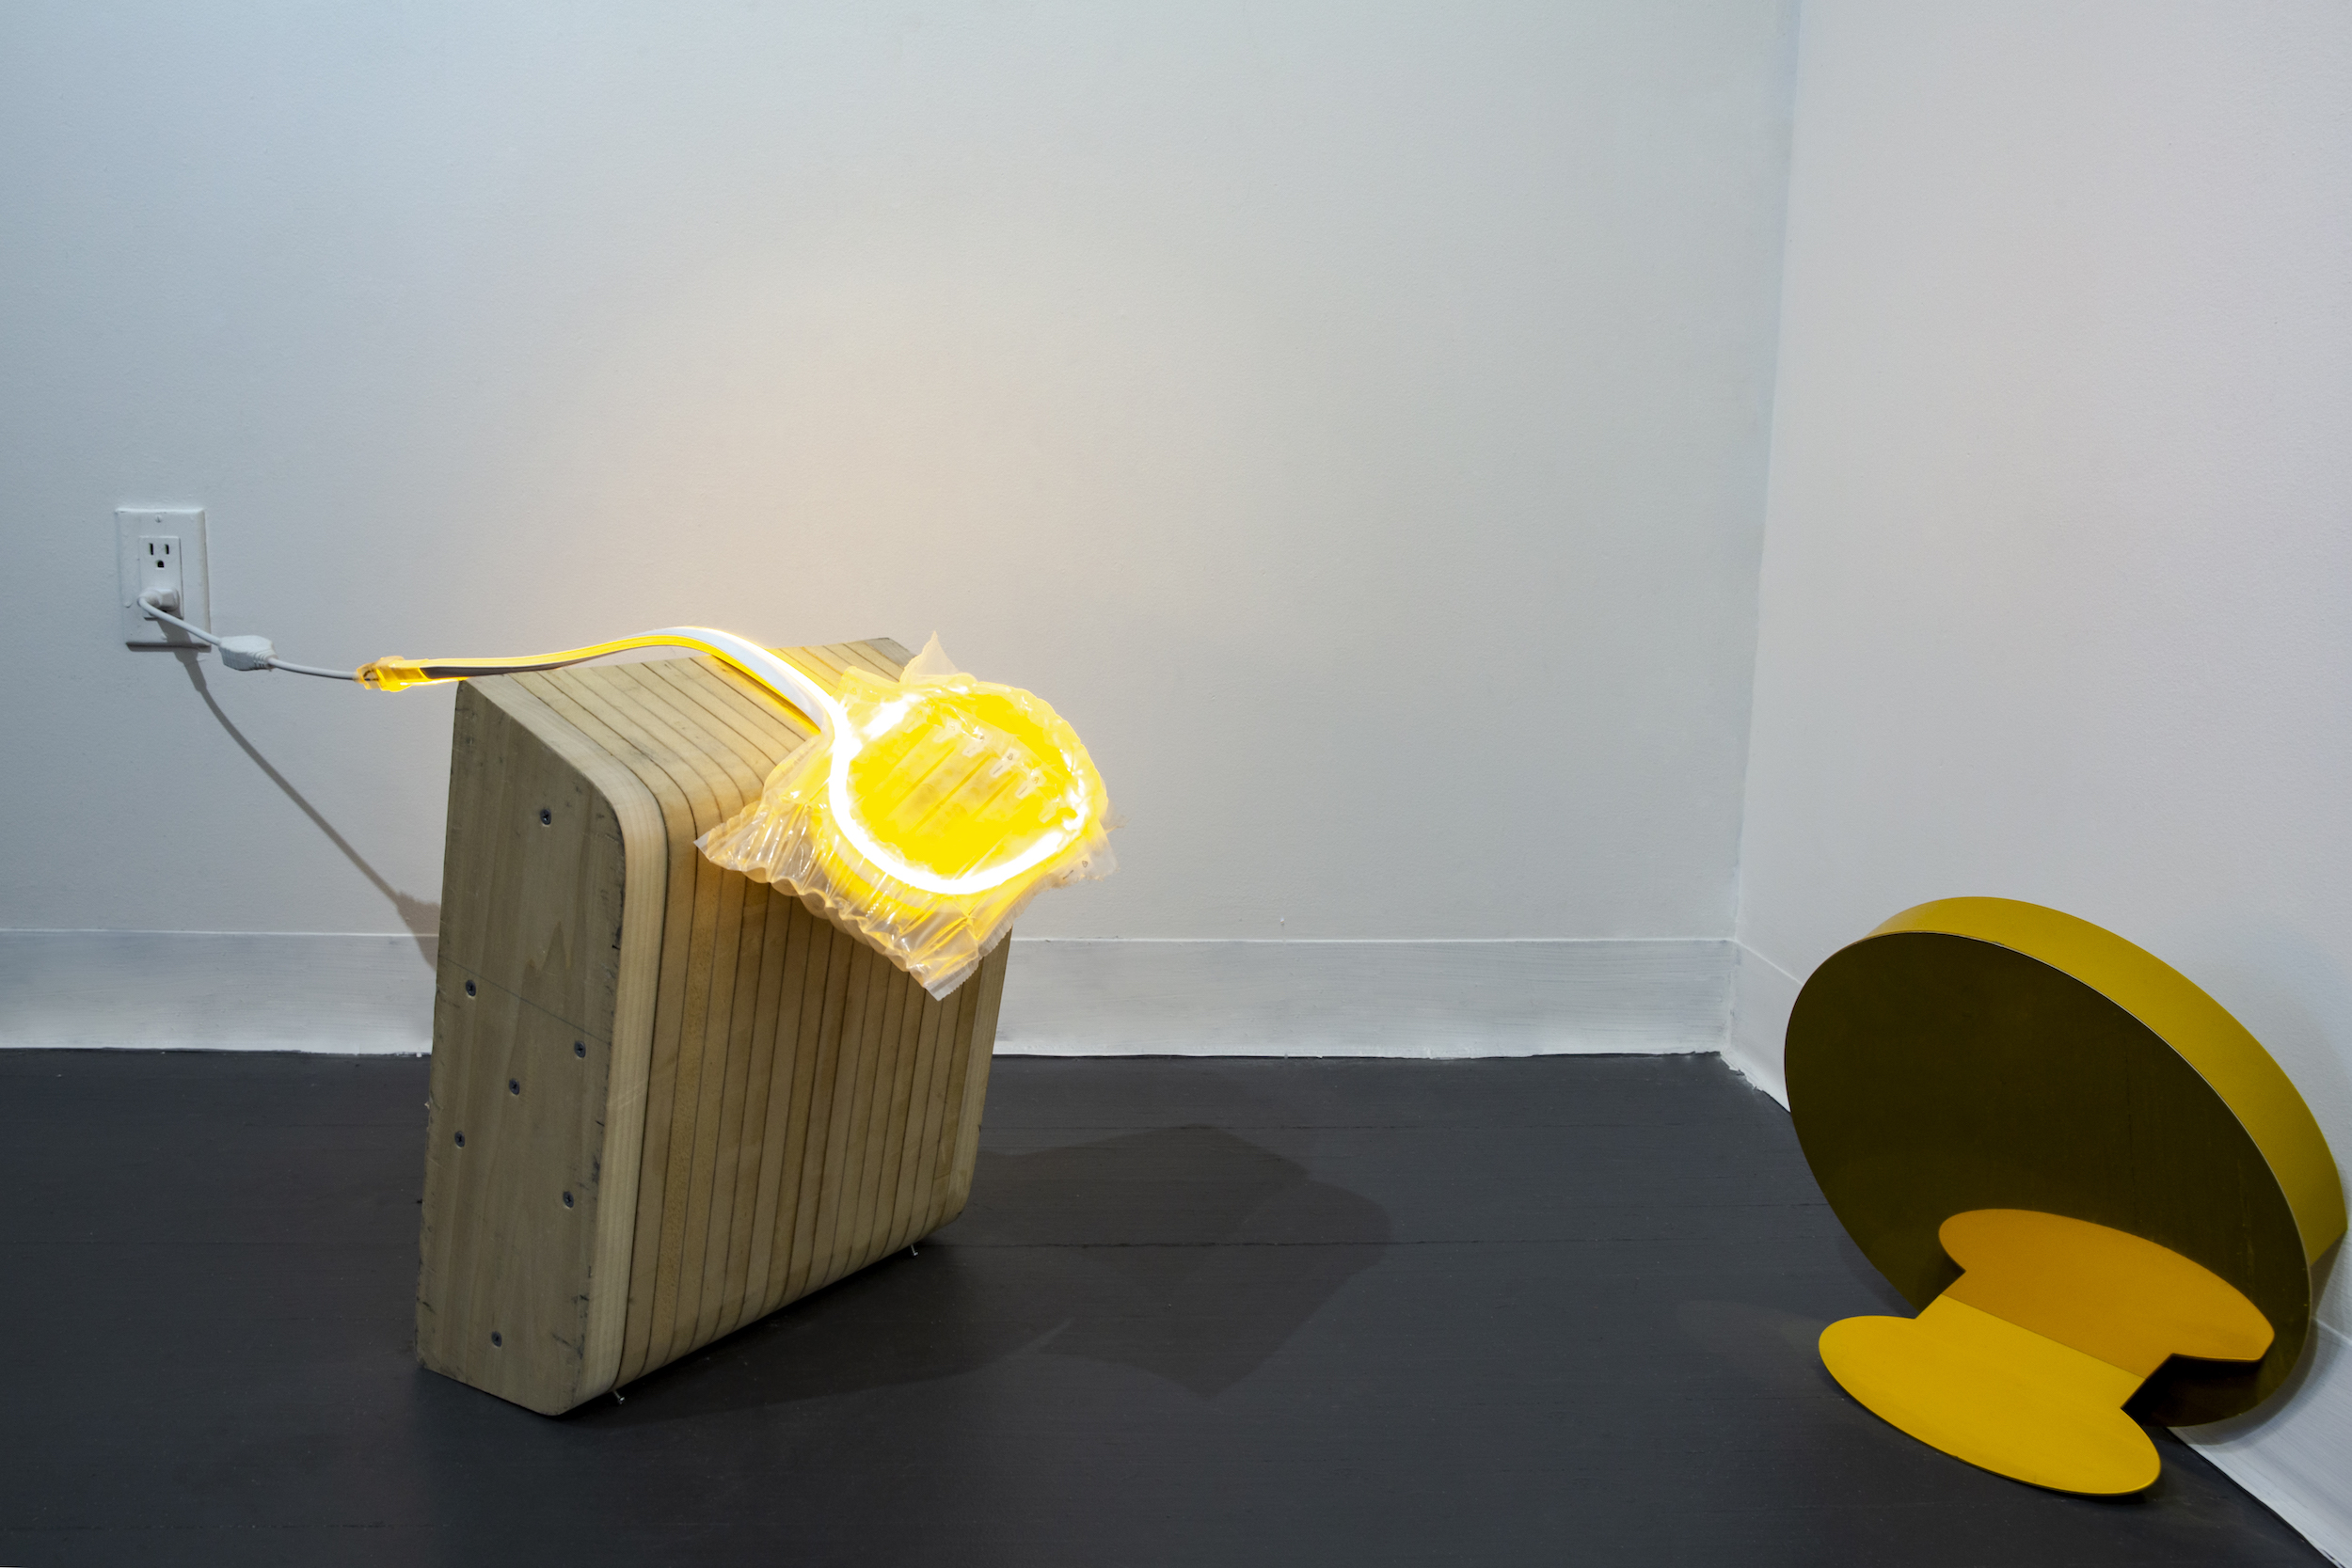 You've also been naughty lately!    Found wooden block and sculpture, LED light strip, used air bubble bag and plastic bag, and screw  Left: Approx. 38 x 12 6/8 x 15 7/8 inches  Right: Approx. 12 x 12 x 1 6/8 inches